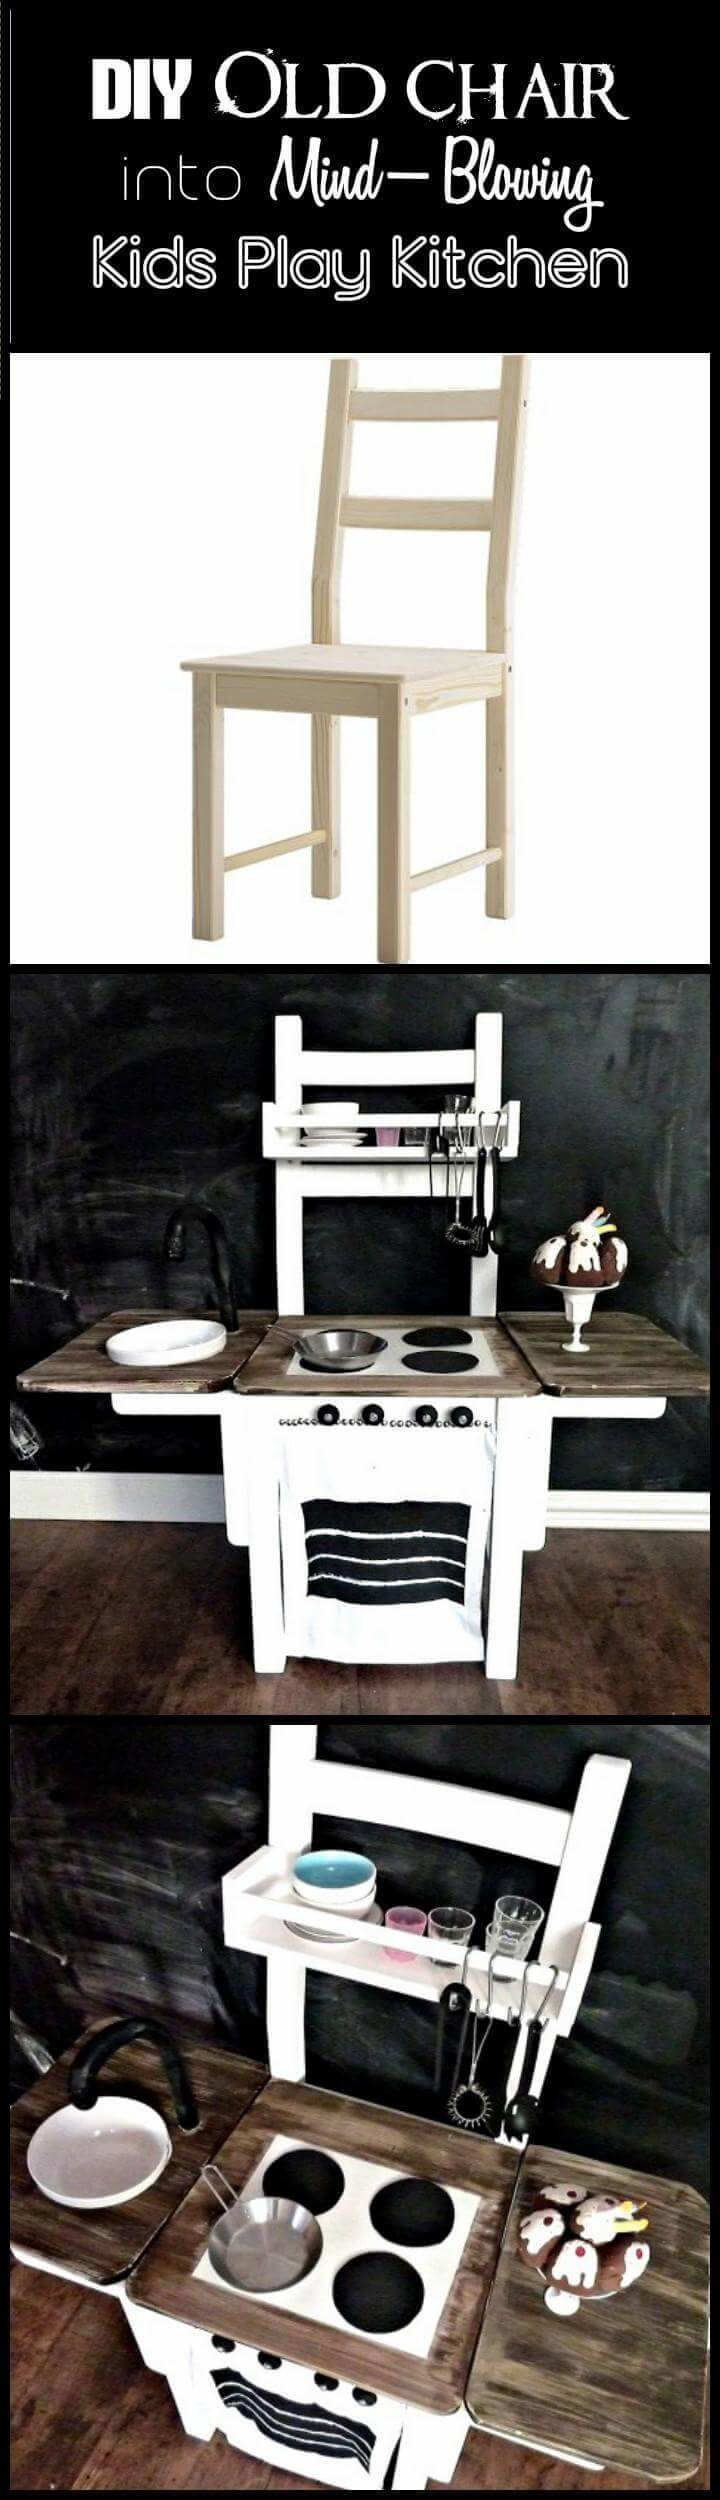 repurposed old chair into mind-blowing kids play kitchen